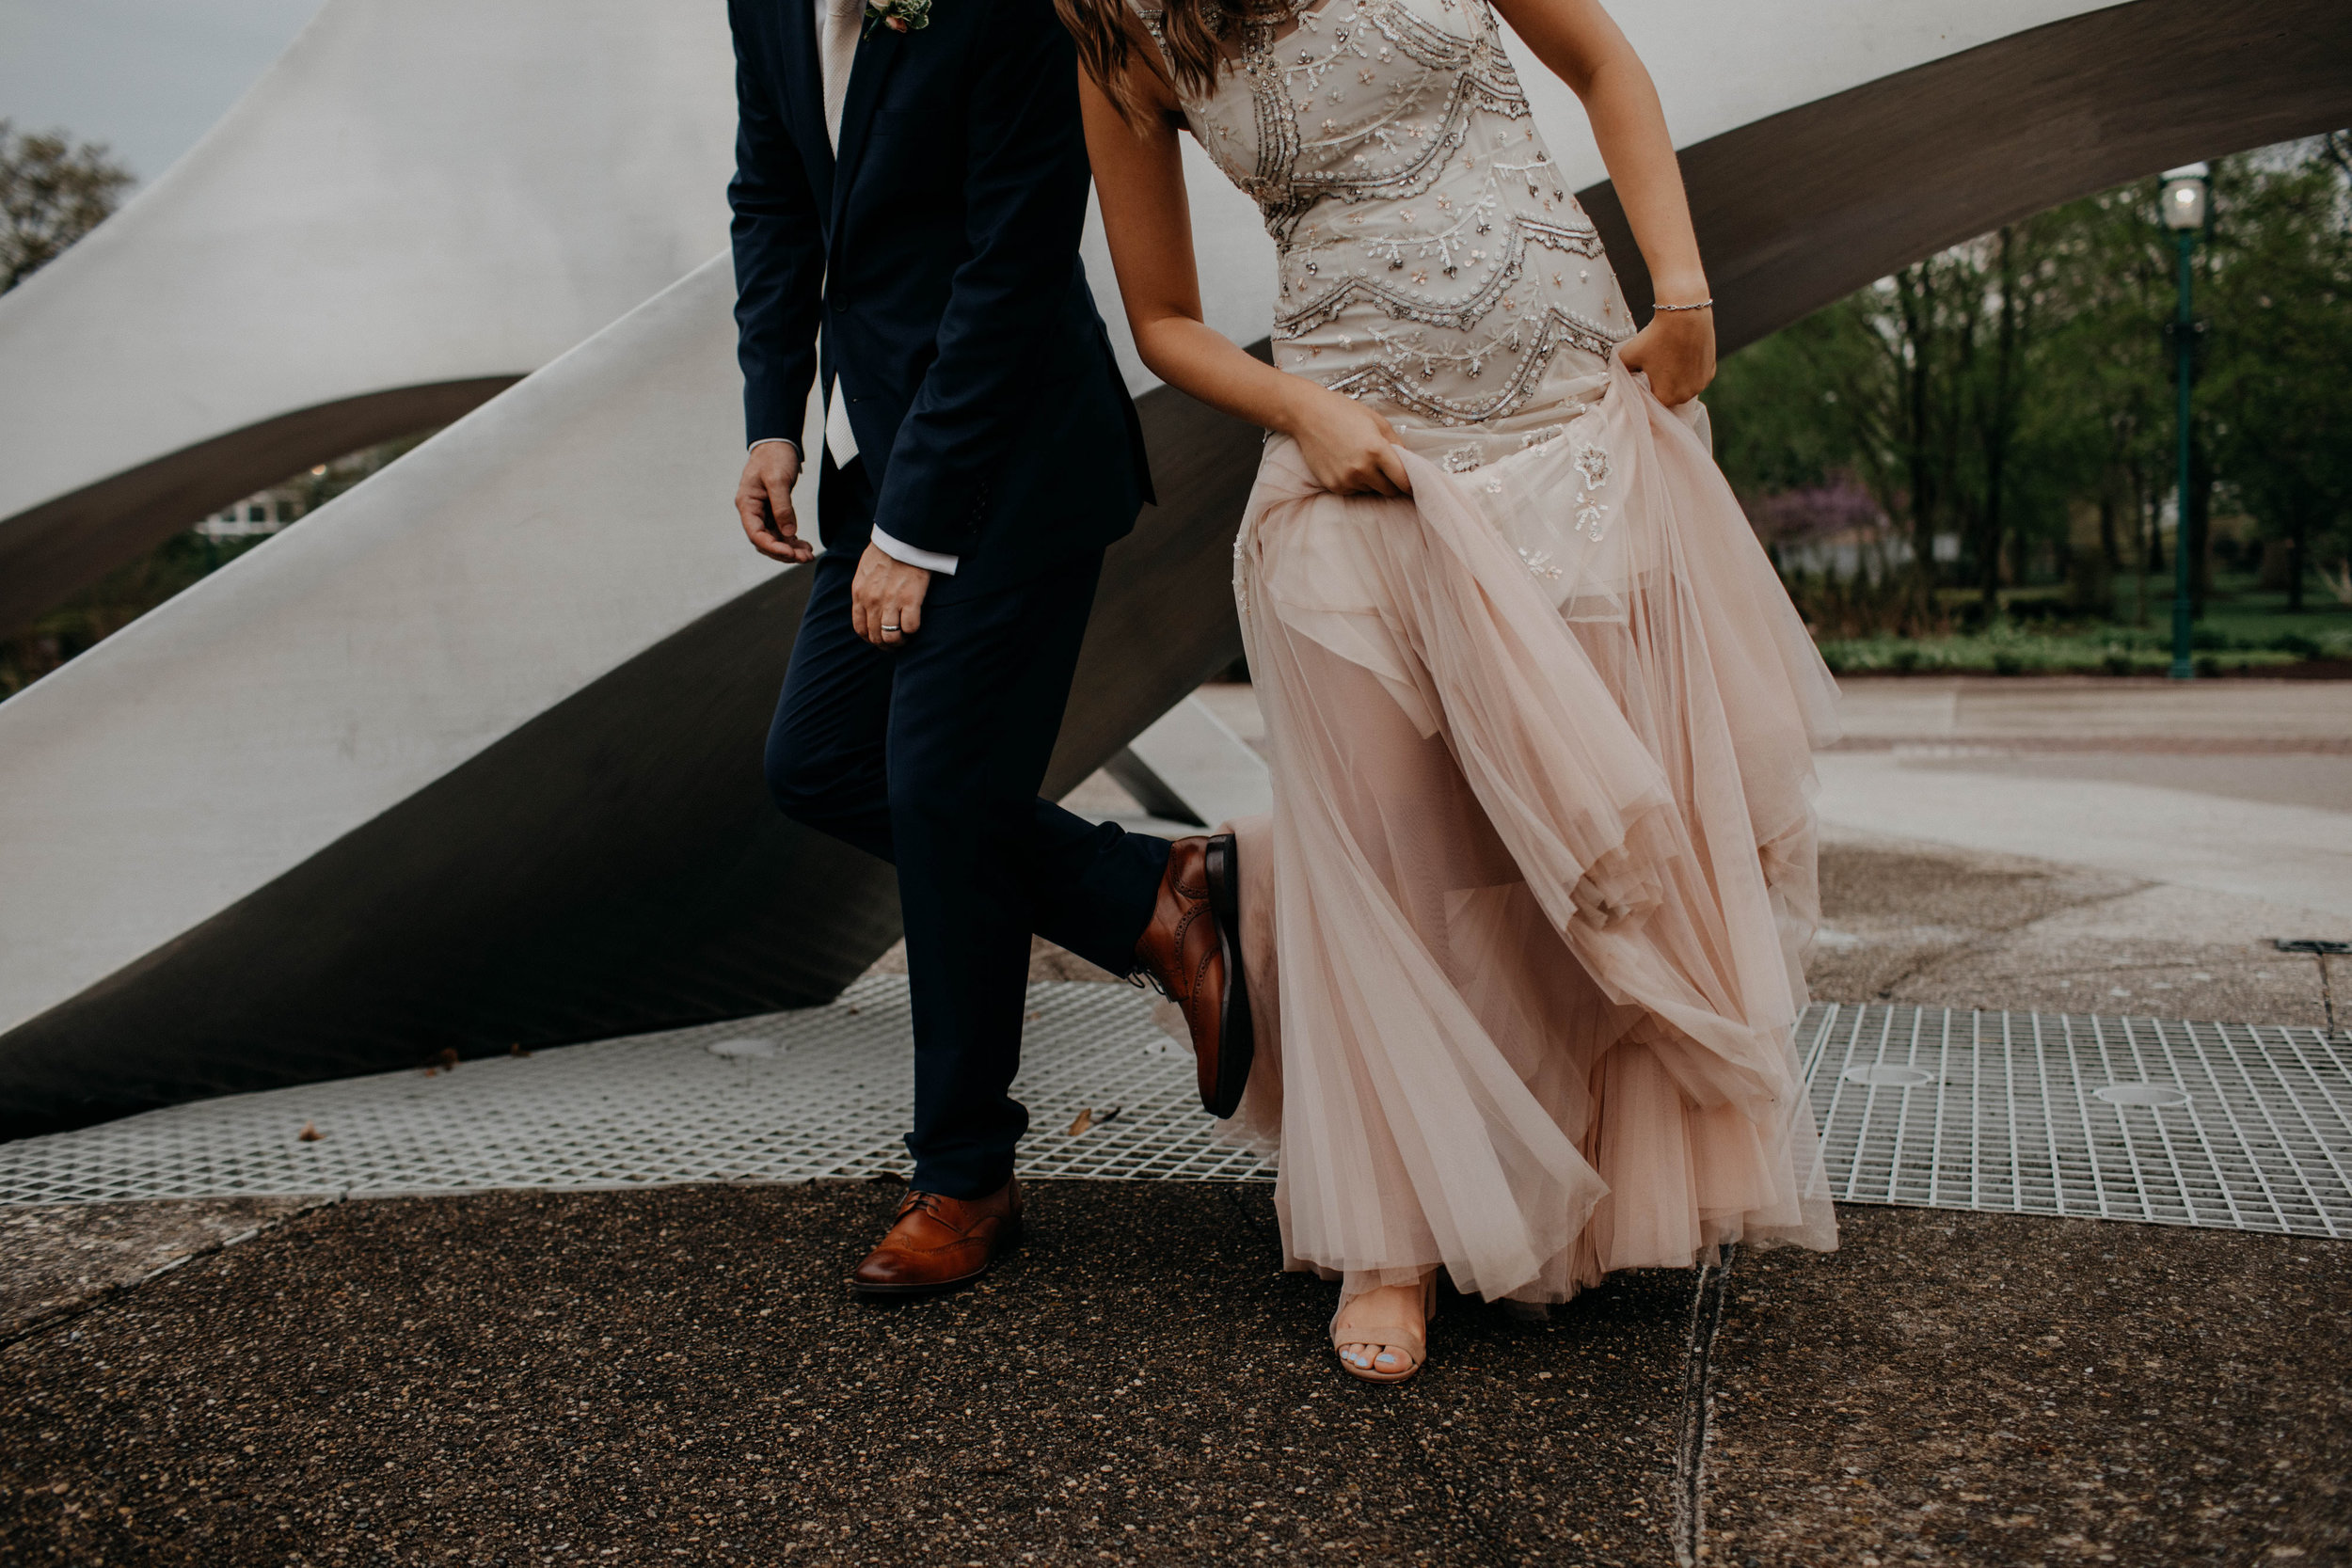 franklin park conservatory wedding columbus ohio wedding photographer grace e jones photography180.jpg